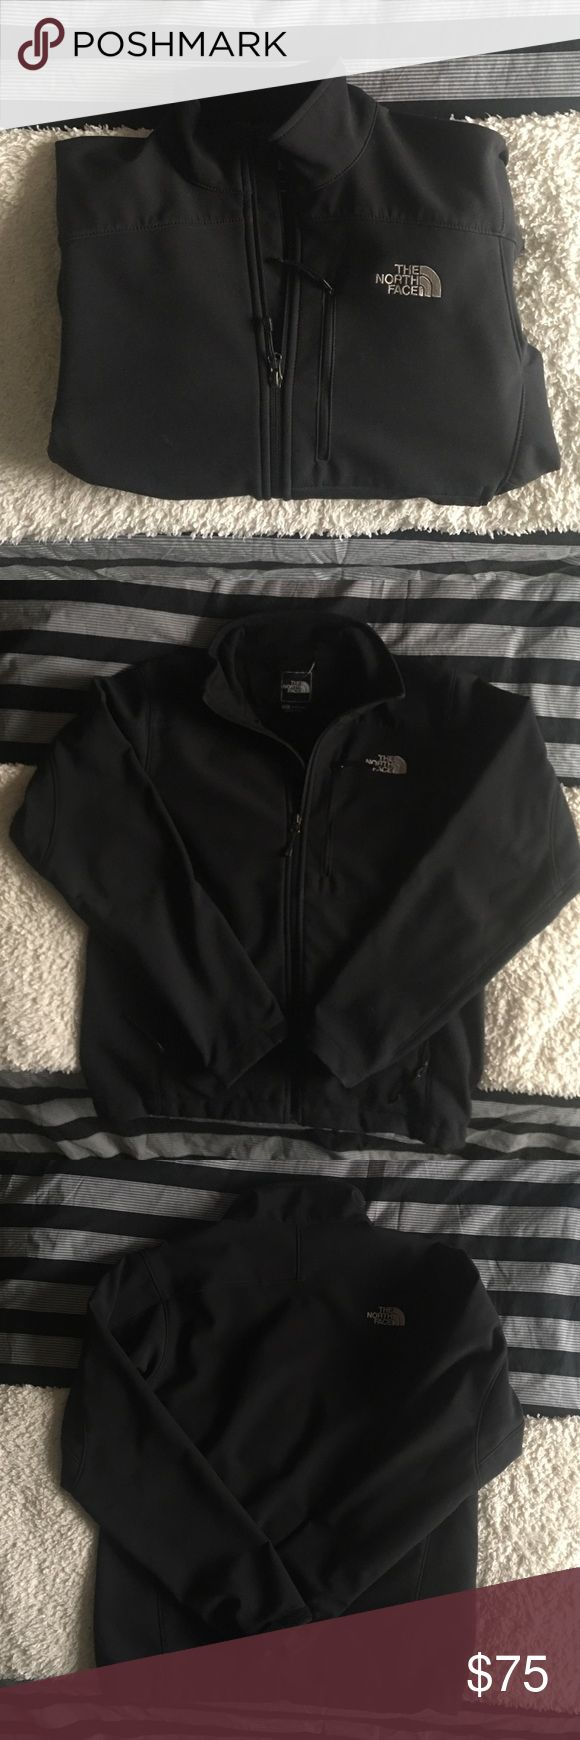 Men's North Face Apex Winter Coat I've had this North Face for awhile but it's honestly in great condition! It's a basic color that goes well with any type of pant! It's a casual look anyone can pull off! Let me know if you have anymore questions! The North Face Jackets & Coats